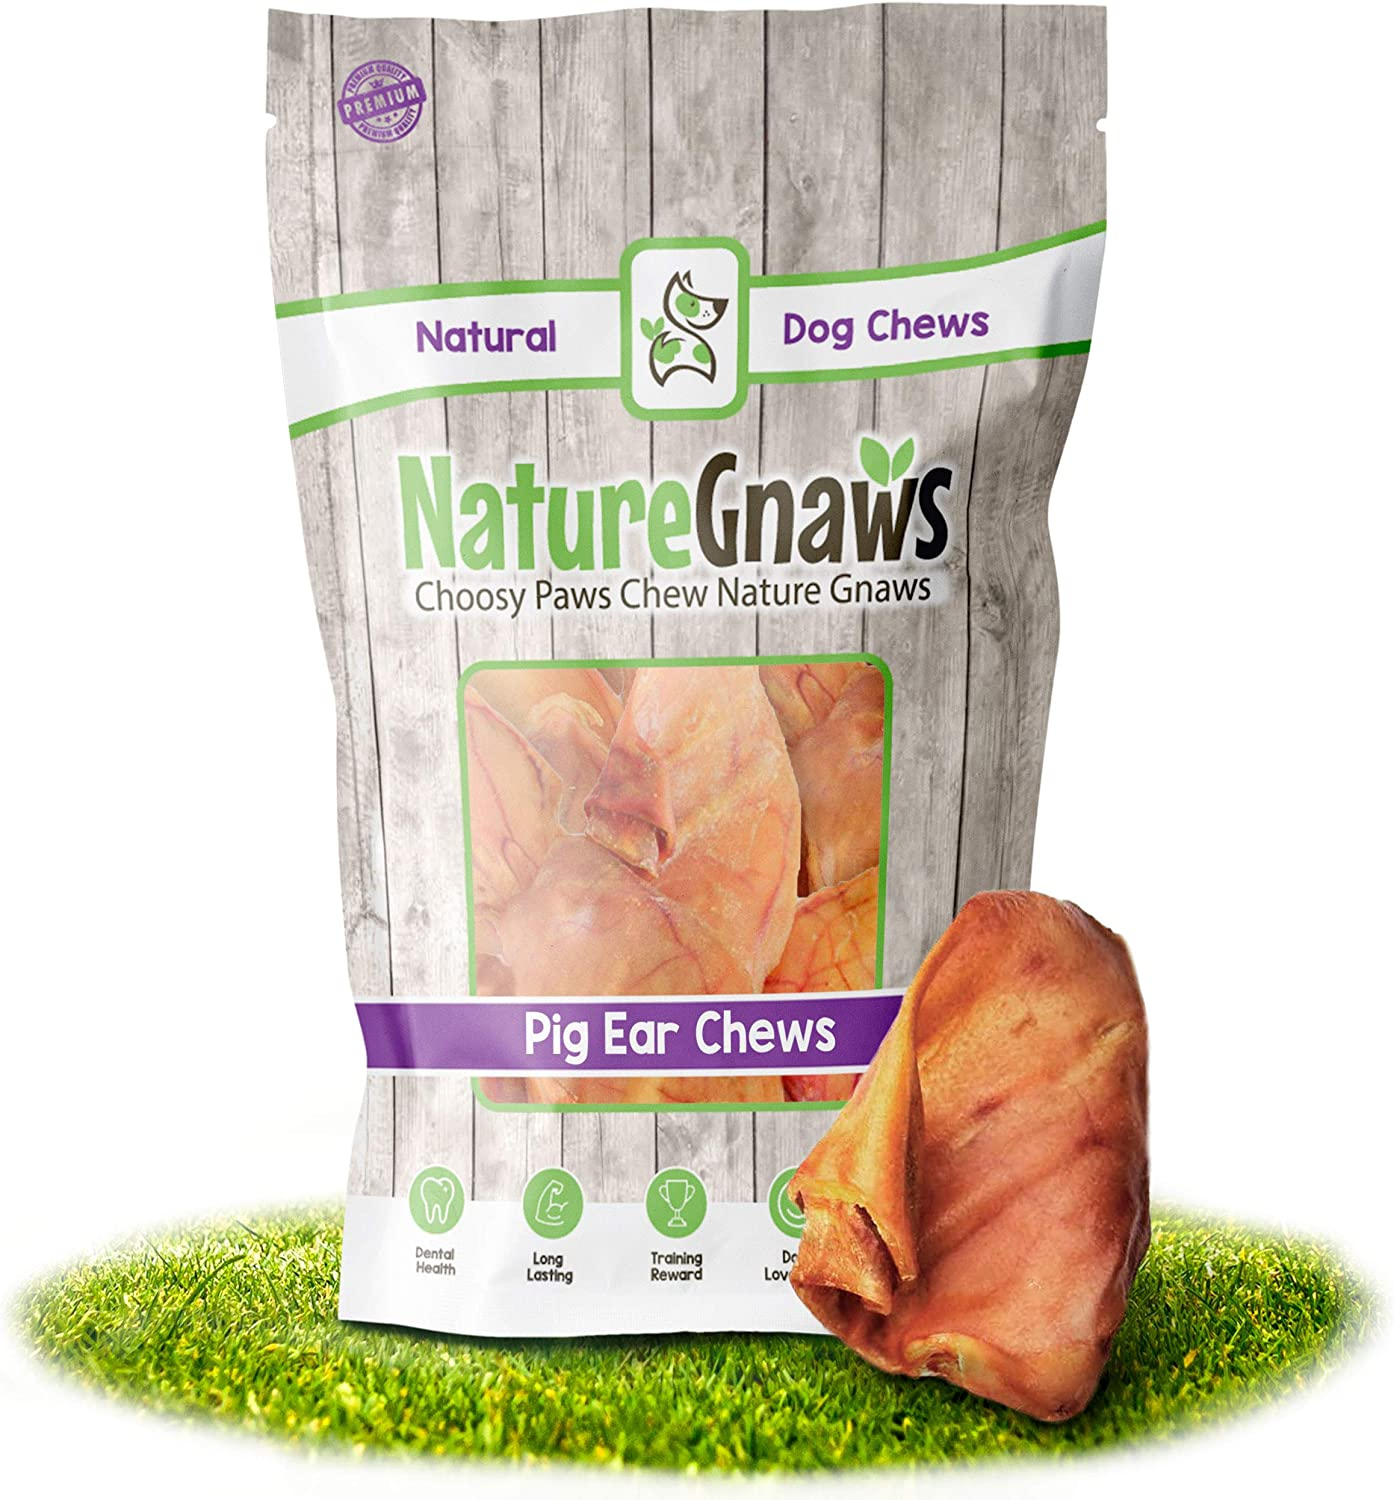 Nature Gnaws Pig Ears for Dogs - Premium Natural Whole Pork Chews - Simple Long Lasting Dog Treats for Large Dogs and Aggressive Chewers - Rawhide Free